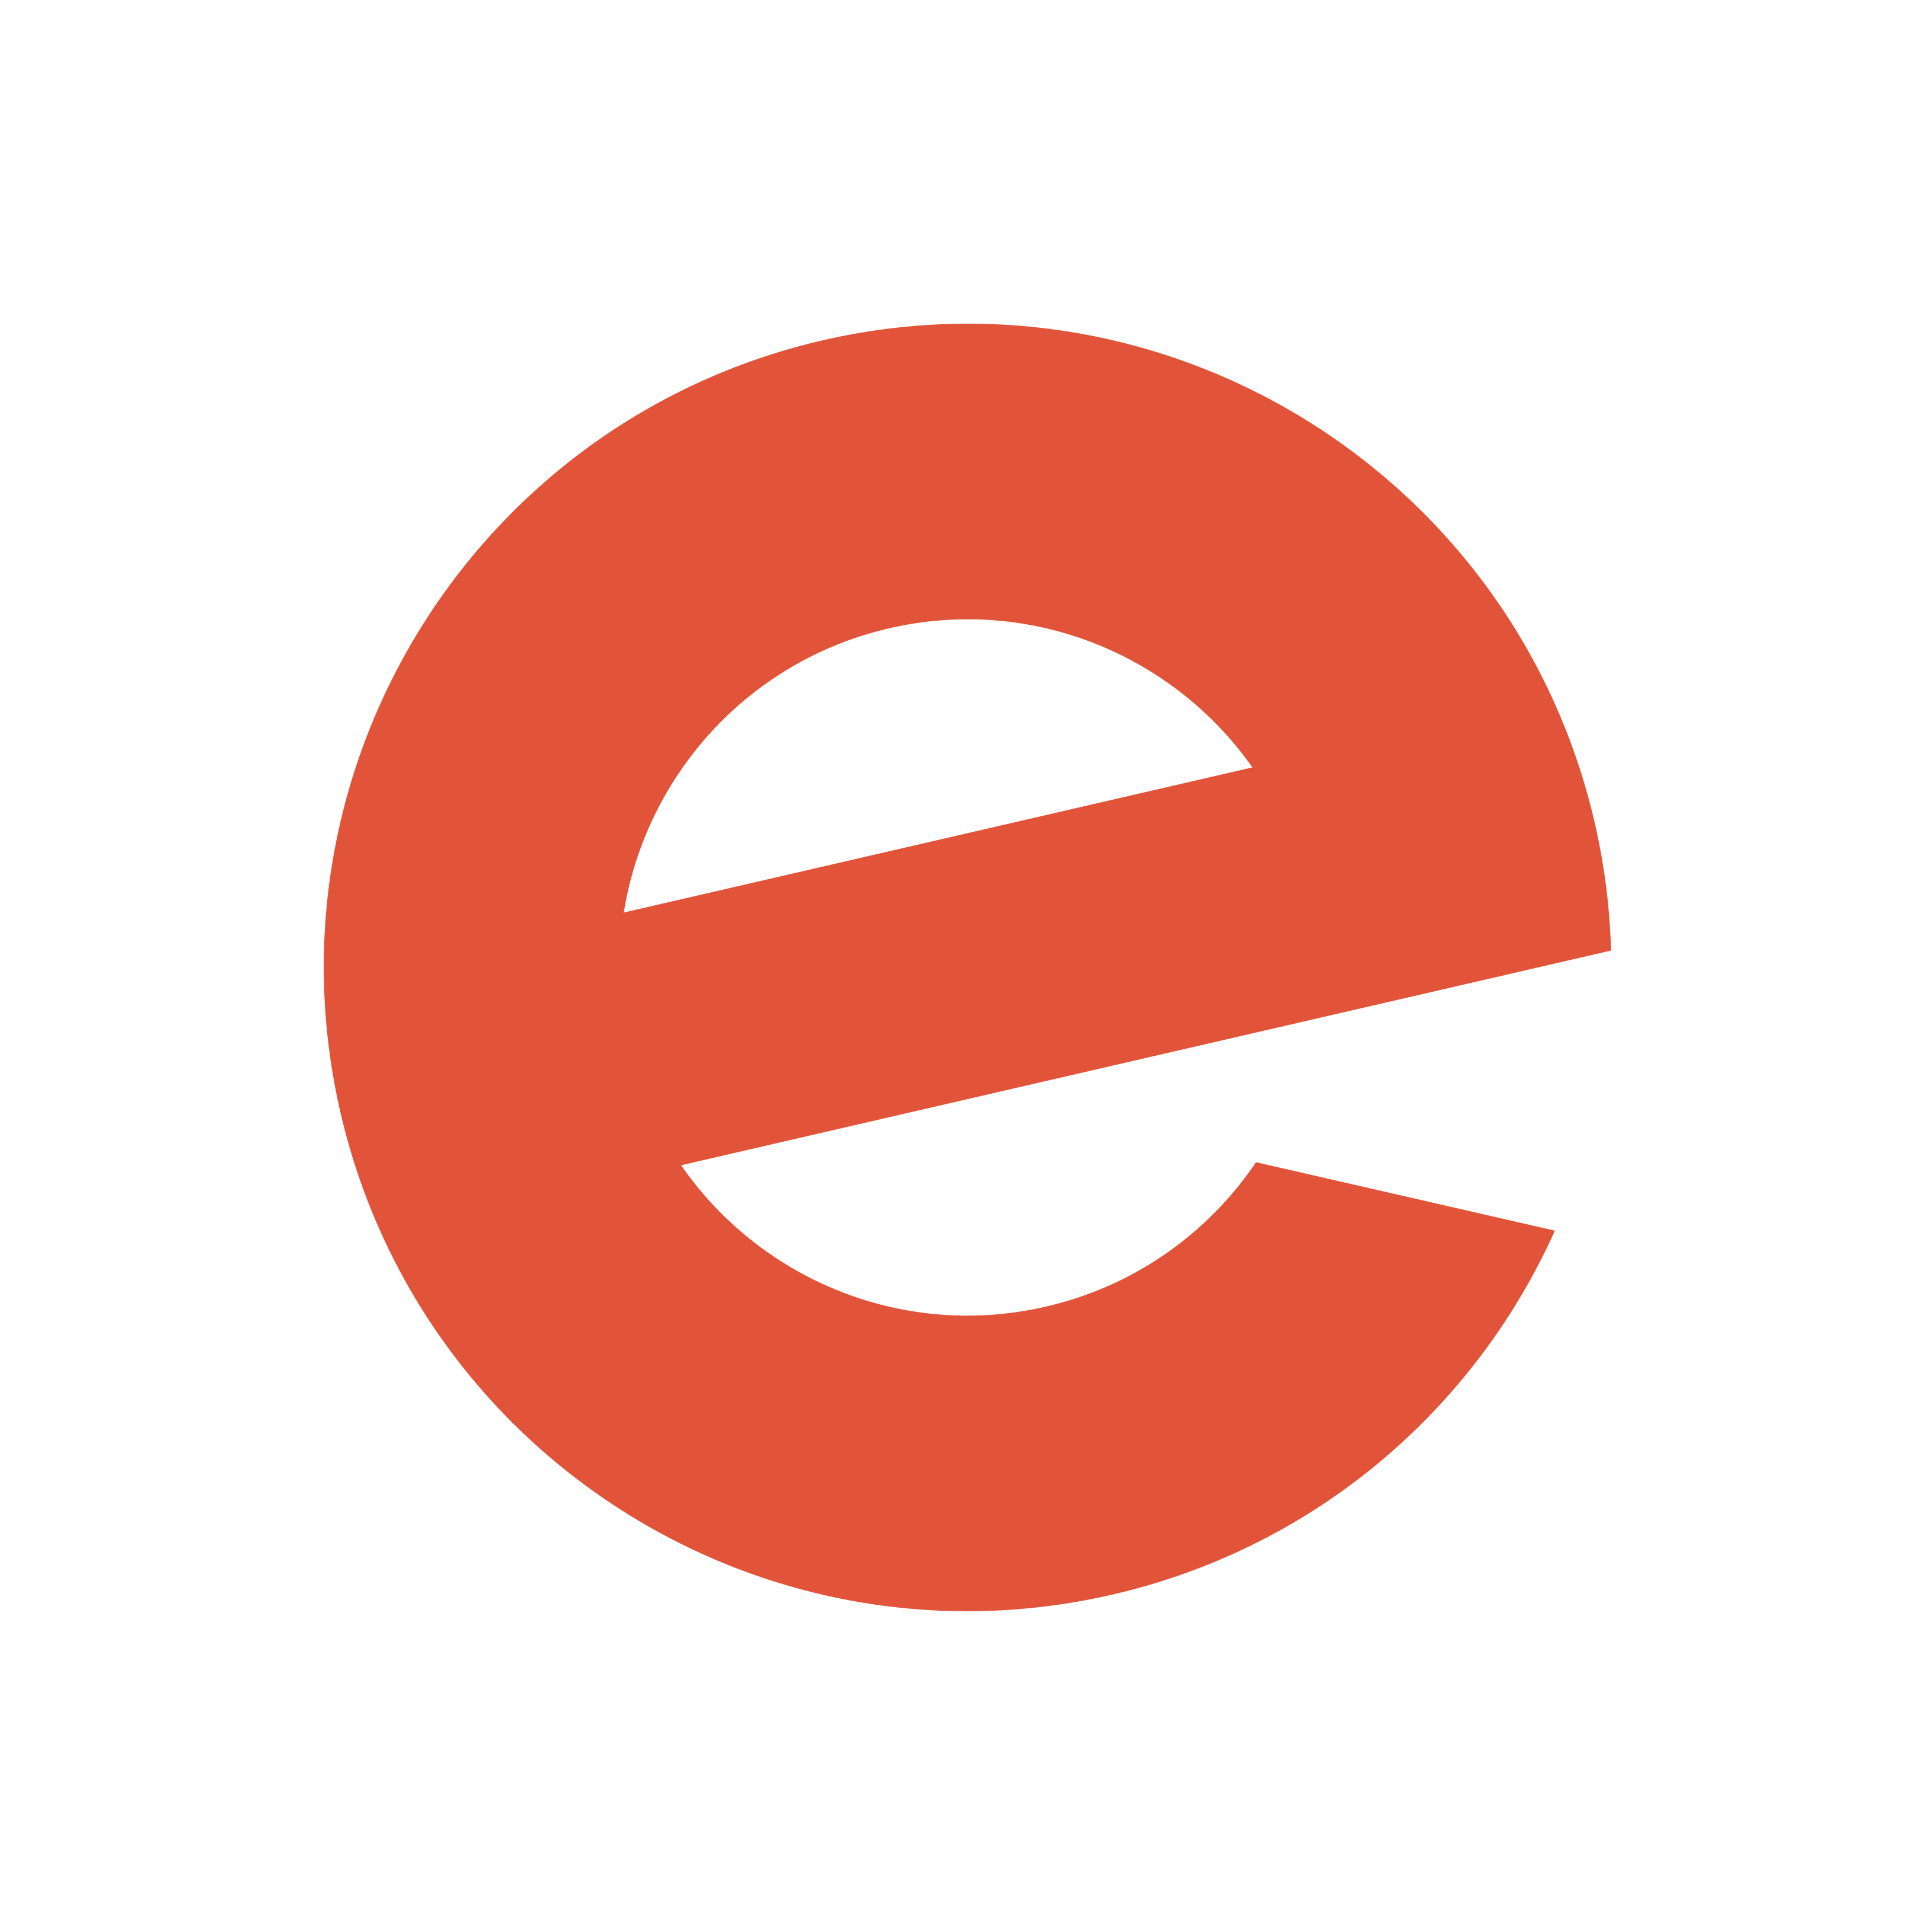 eventbrite icon png 10 free Cliparts   Download images on ...